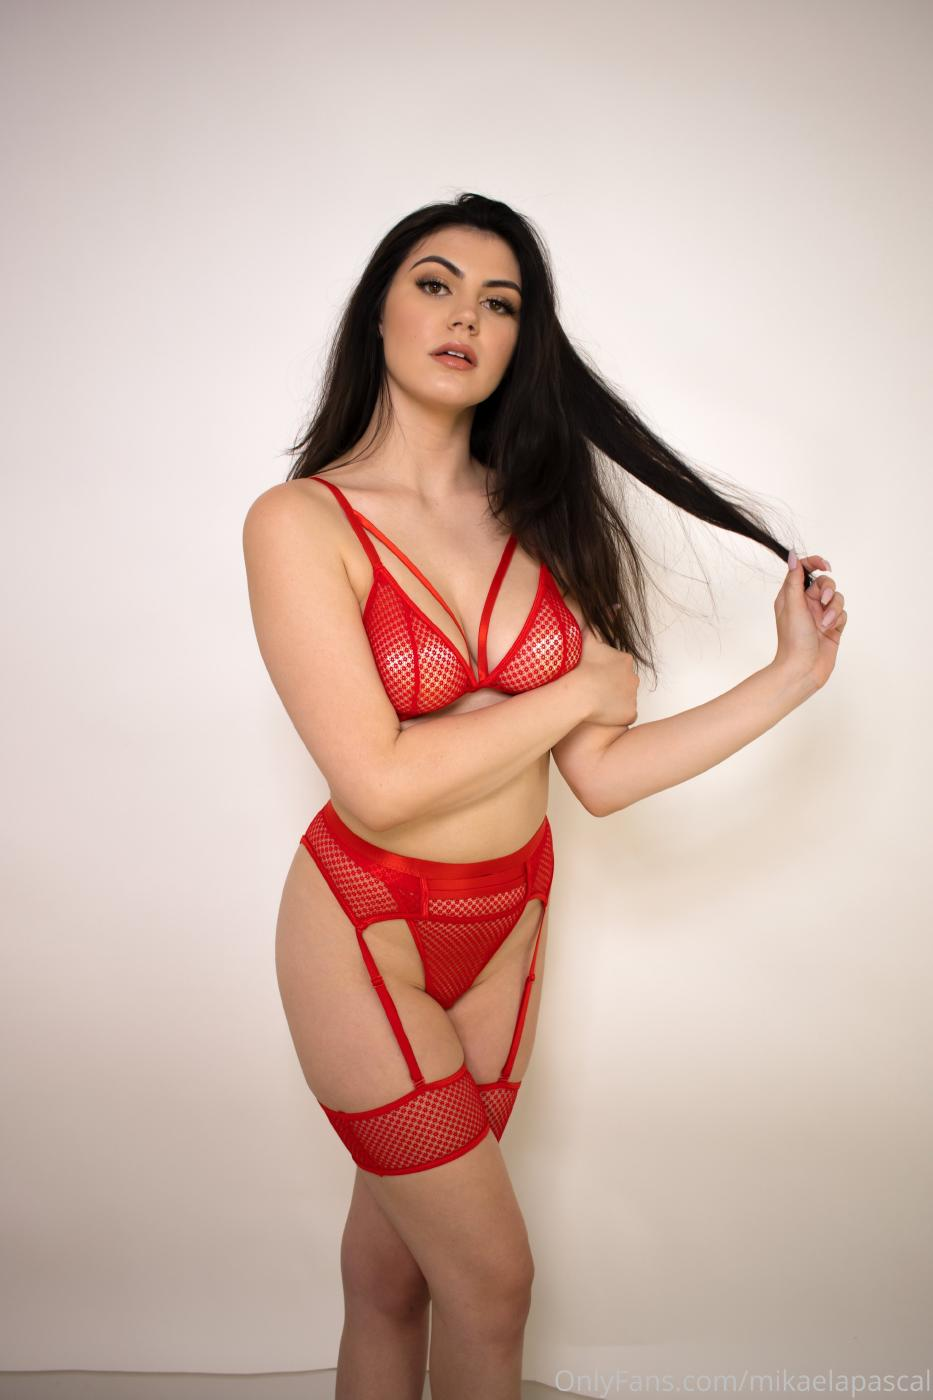 Mikaela Pascal Red Lingerie Onlyfans Set Leaked 0005